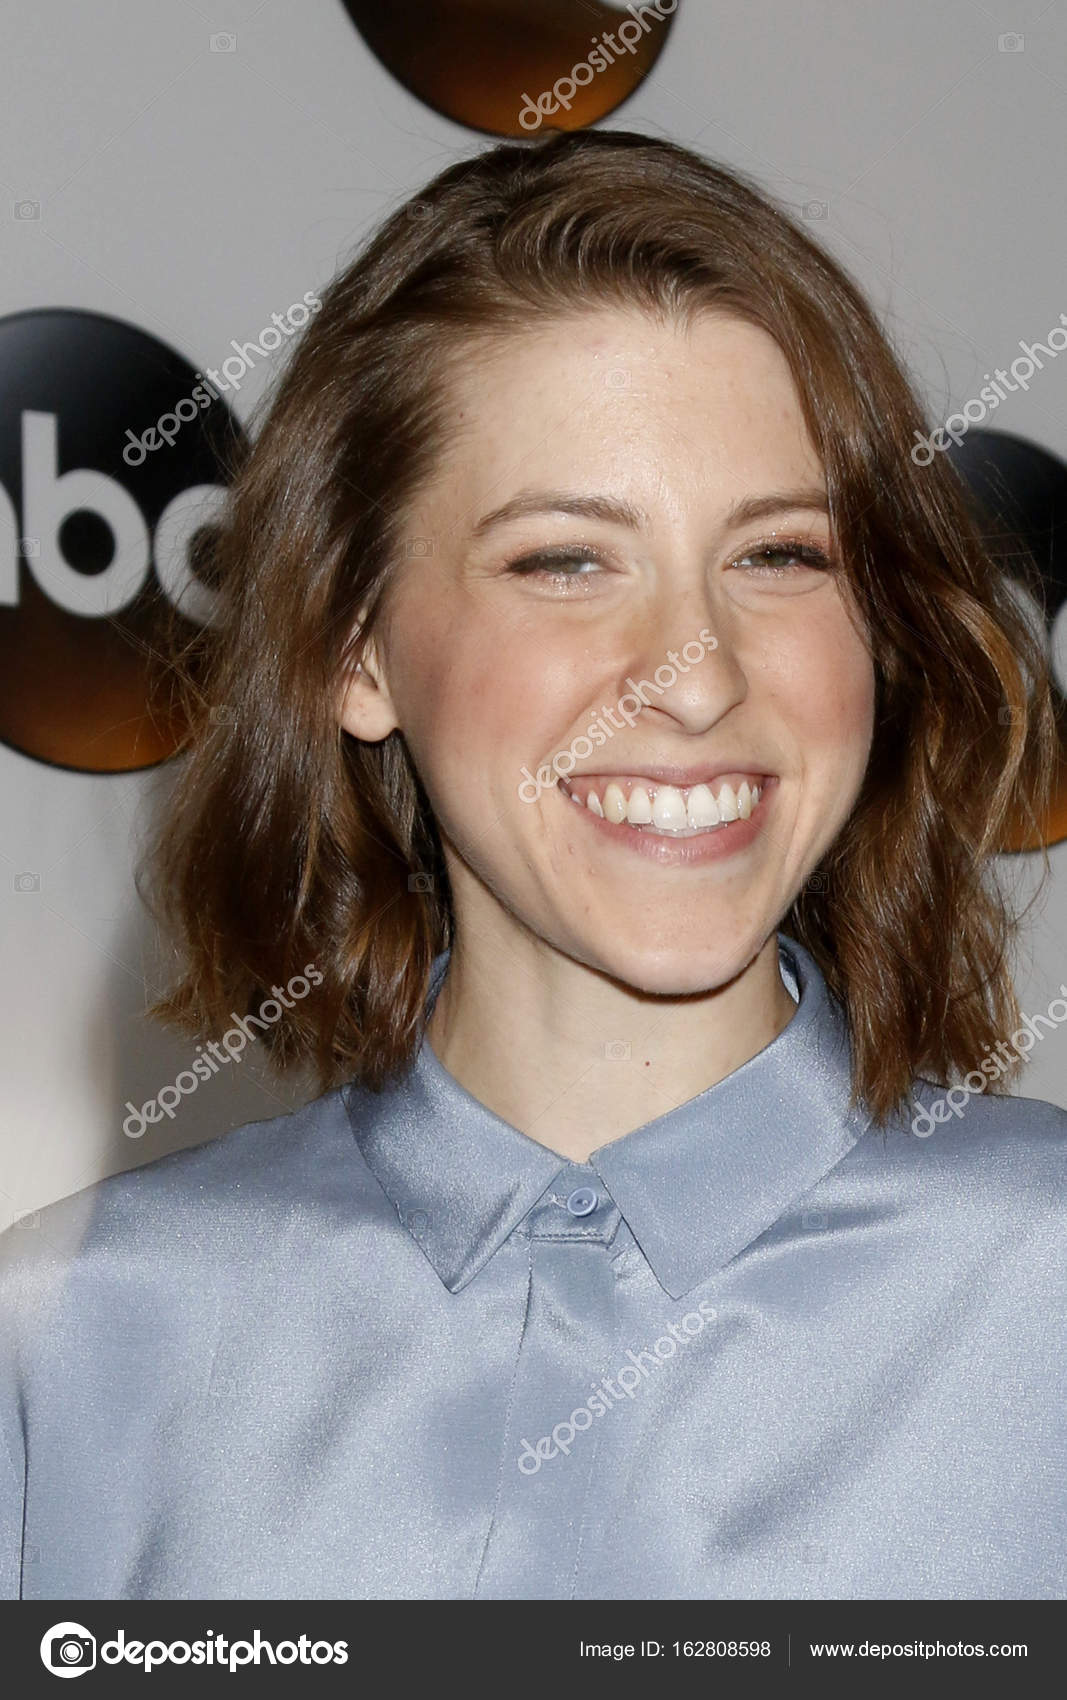 Eden Sher Nude Photos 8